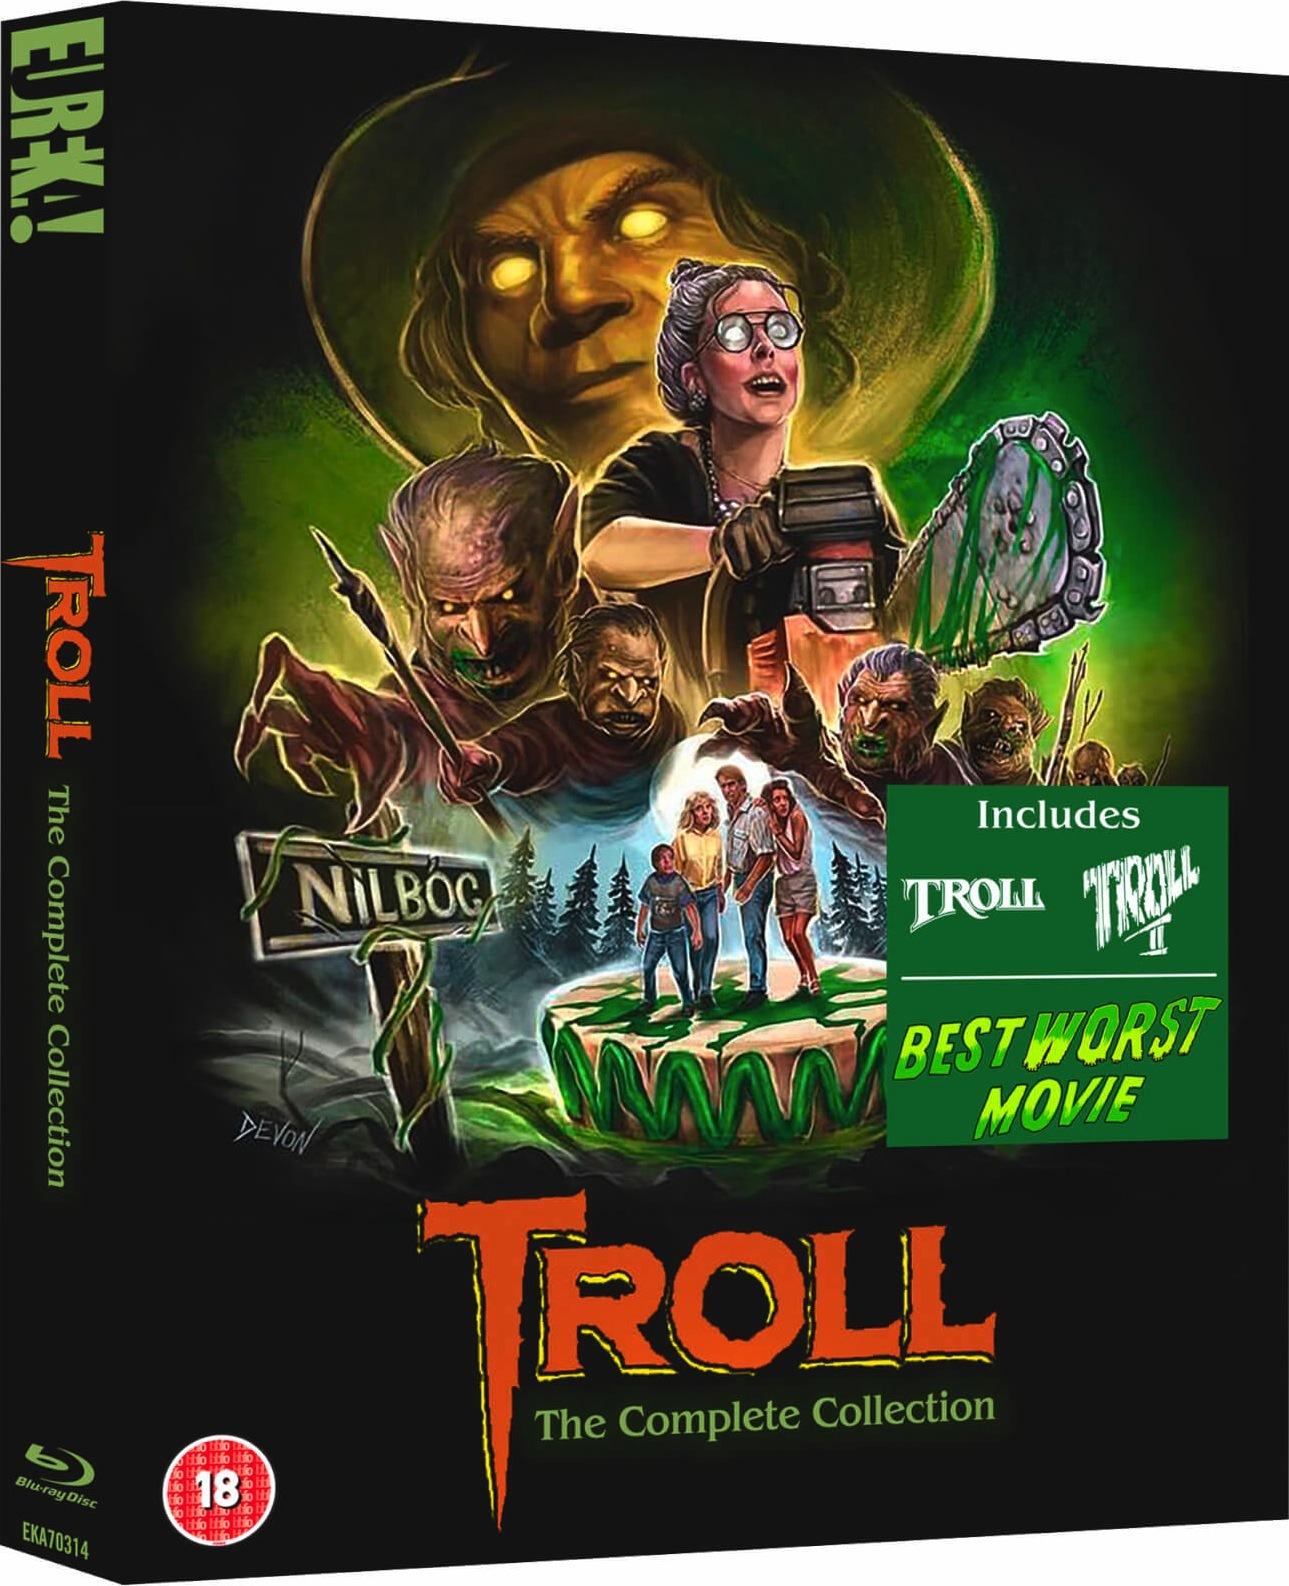 Troll 2 Blu-Ray Collection 2